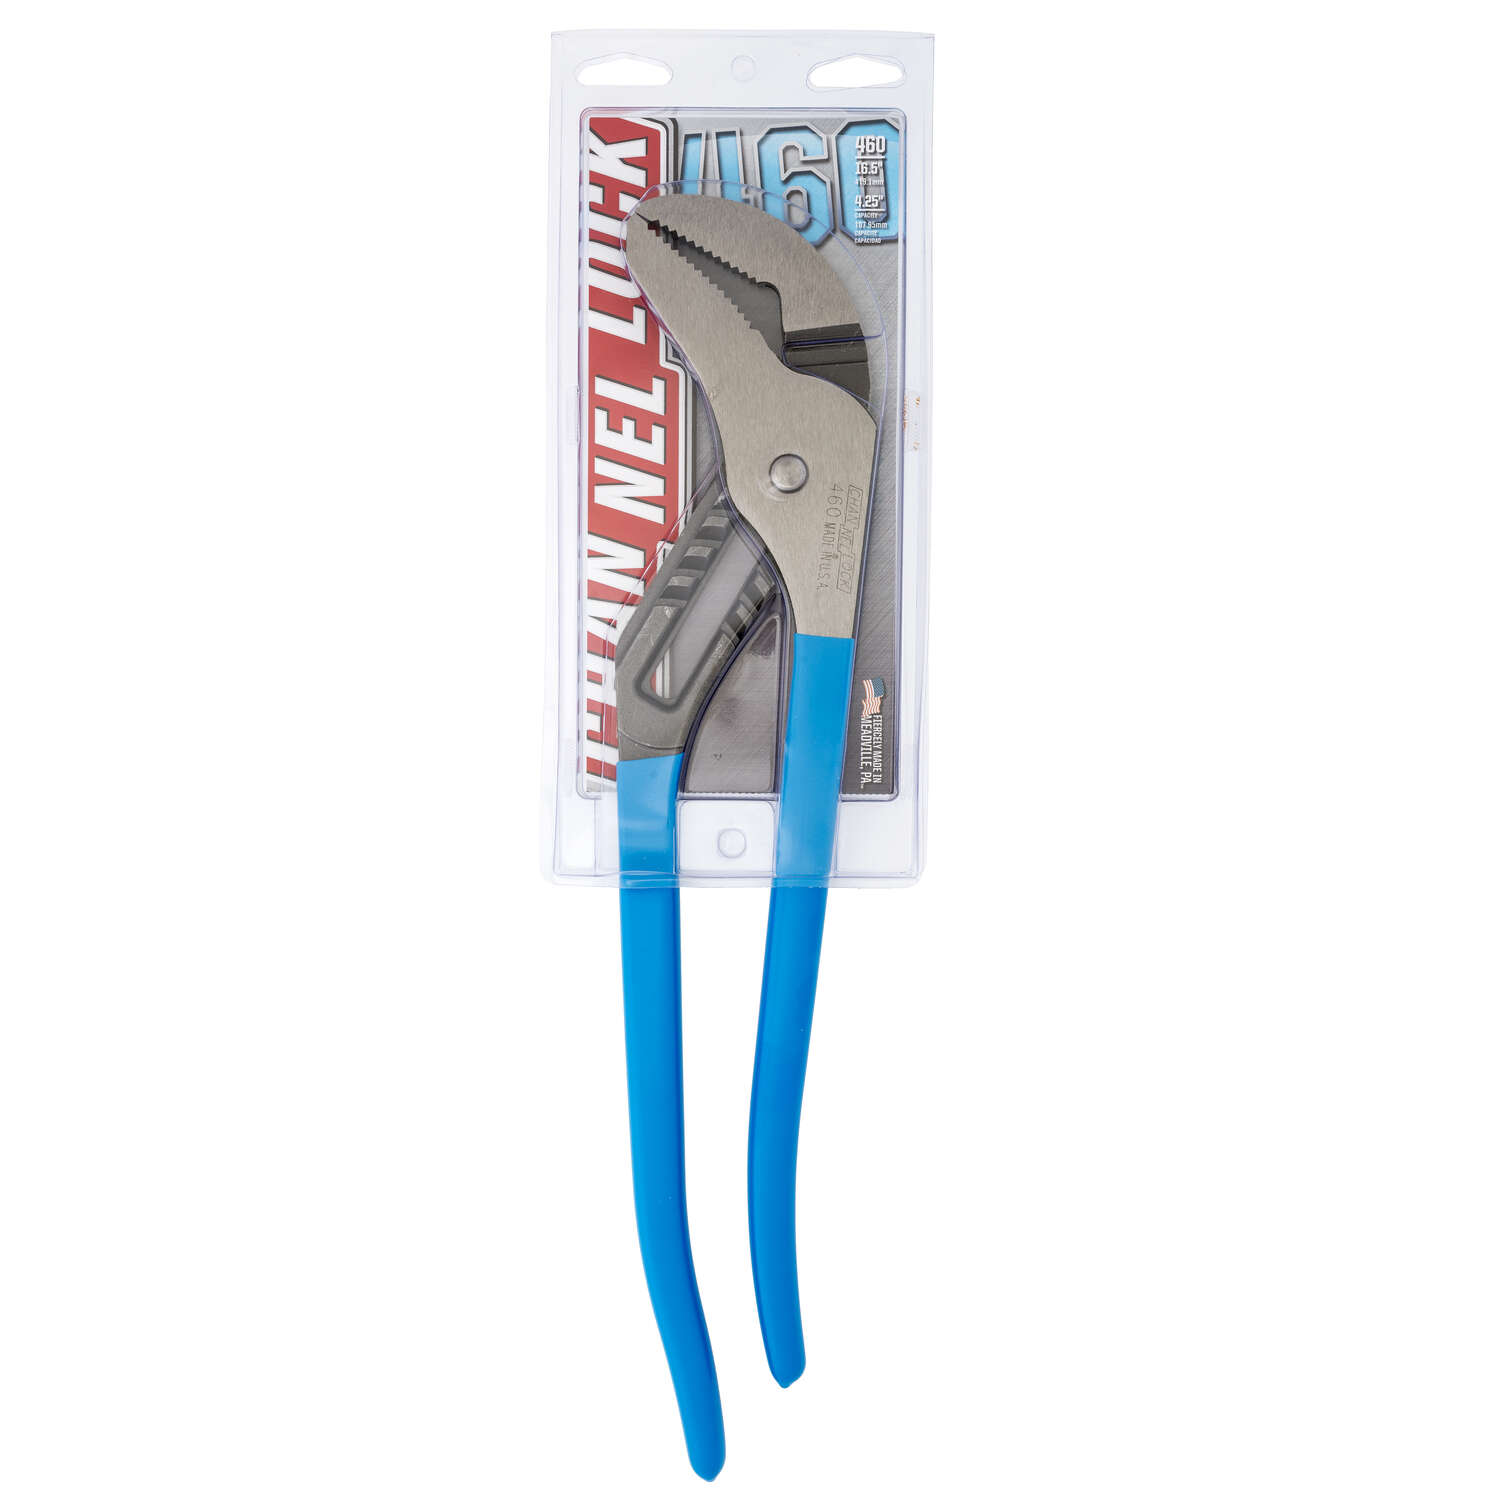 Channellock  16 in. Carbon Steel  Tongue and Groove Pliers  1